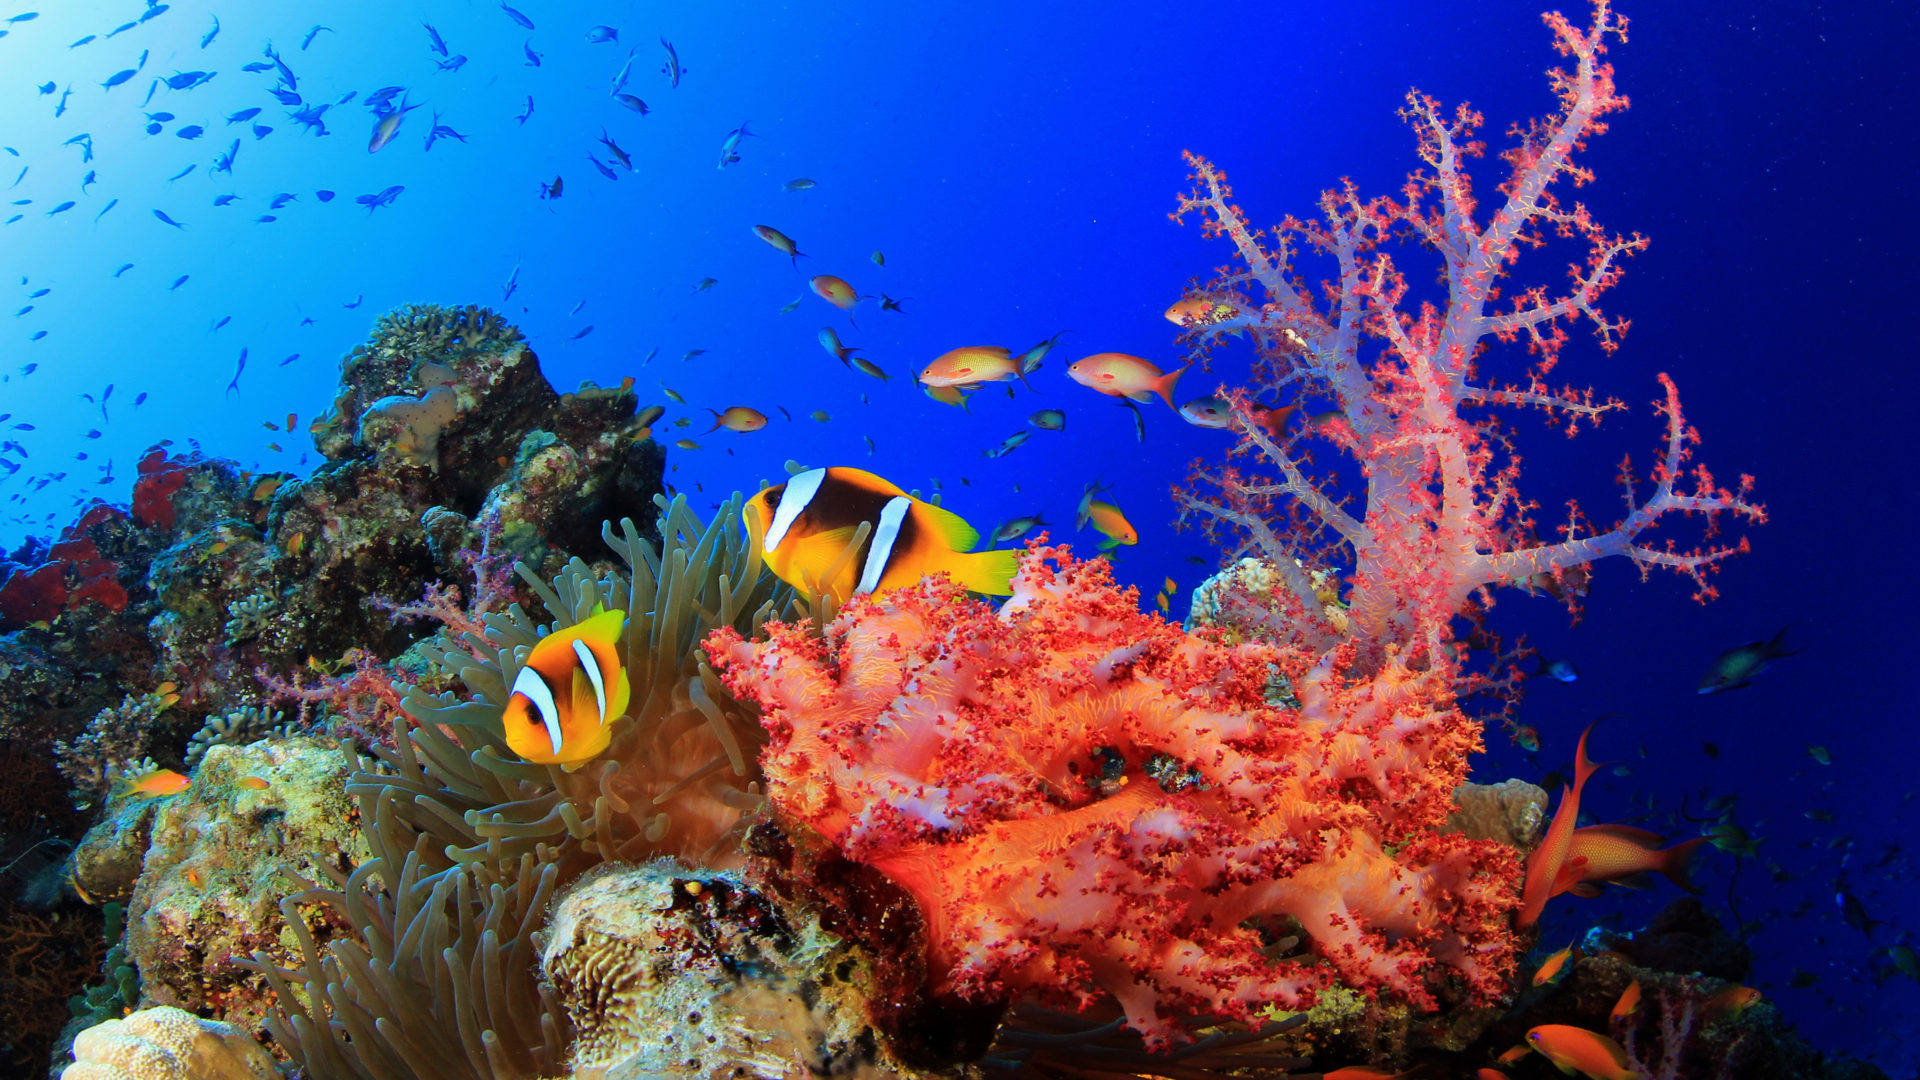 Hunting Iphone Wallpaper Underwater World Okean Corals Tropical Colorful Fish Hd